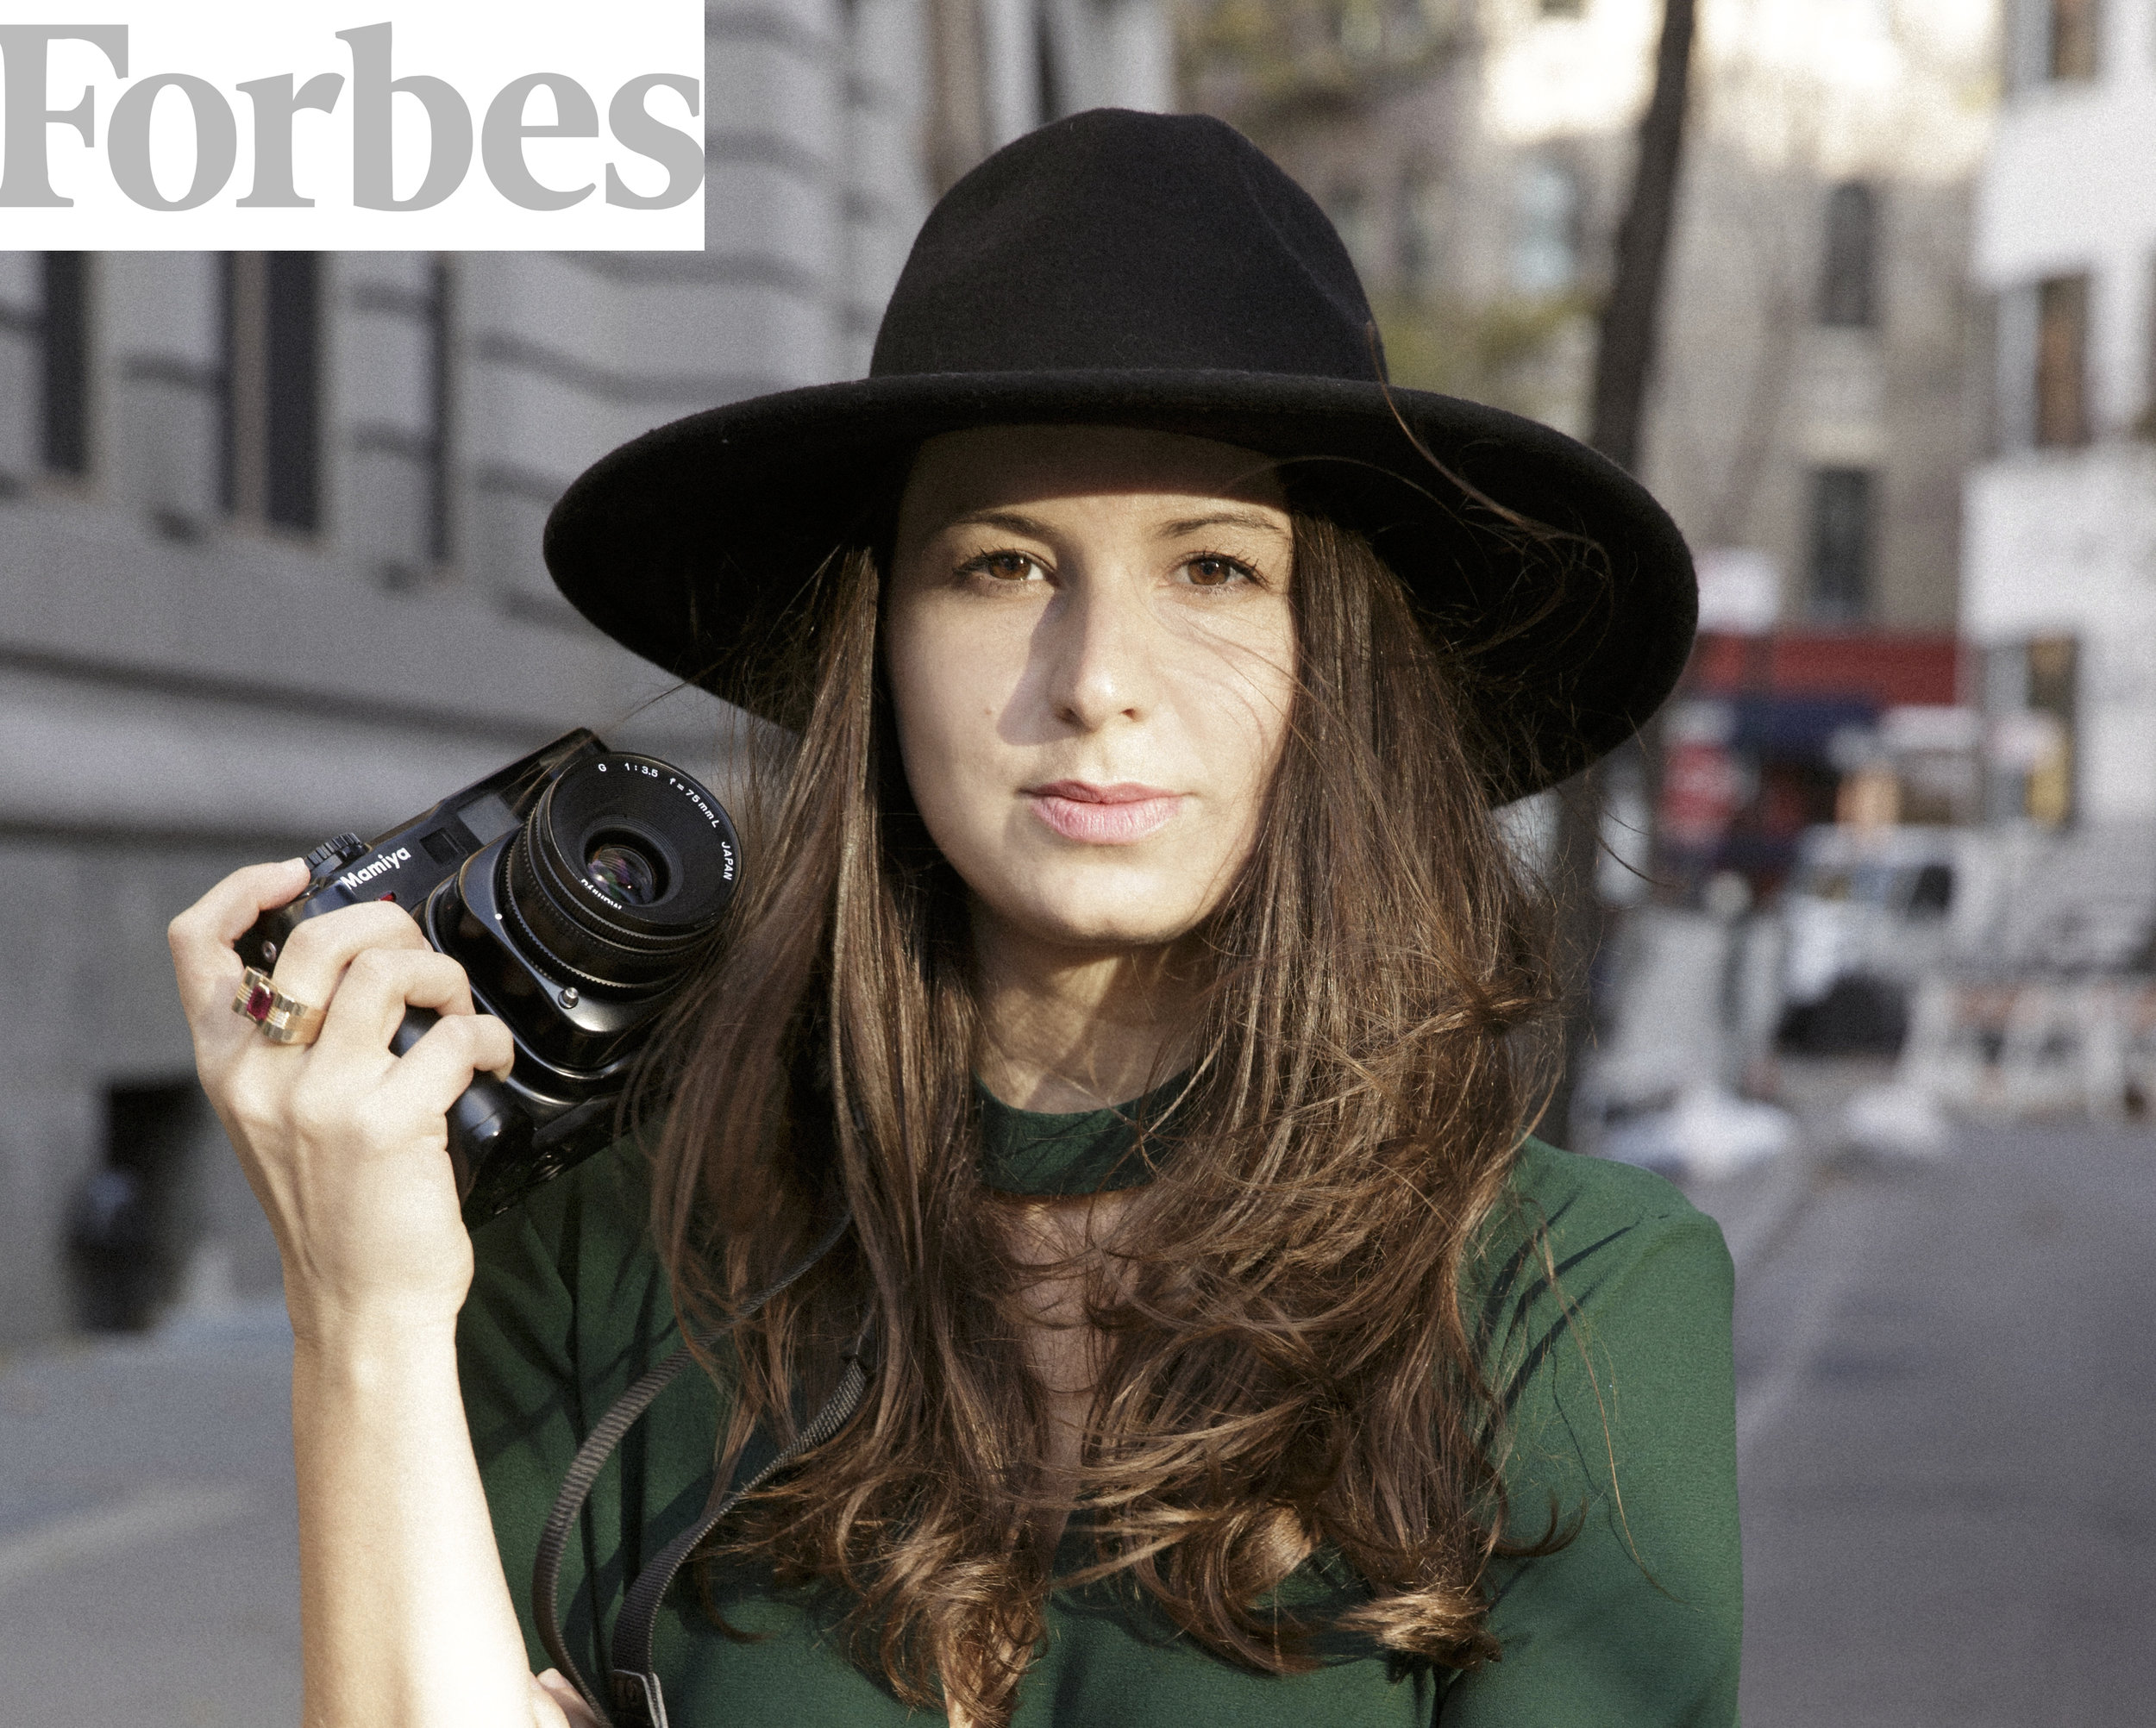 ABOUT - Italian photographer based in New York, she is in the prestigious Forbes list :Forbes 30 Under 30 in the Arts.Her clients include: Bulgari, M Missoni, Calvin Klein, TOD'S, Marc Jacobs, Victoria's Secret, Woolrich, Cesare Paciotti, Santoni, Genny, Agent Provocateurand several more. Federica Dall'Orso publishes her work in Vogue, Elle, GLAMOUR, WWD, The Coveteur and W Magazine.For bookings or print please contact:federicaphotography@yahoo.com Instagram: @federicaphotography